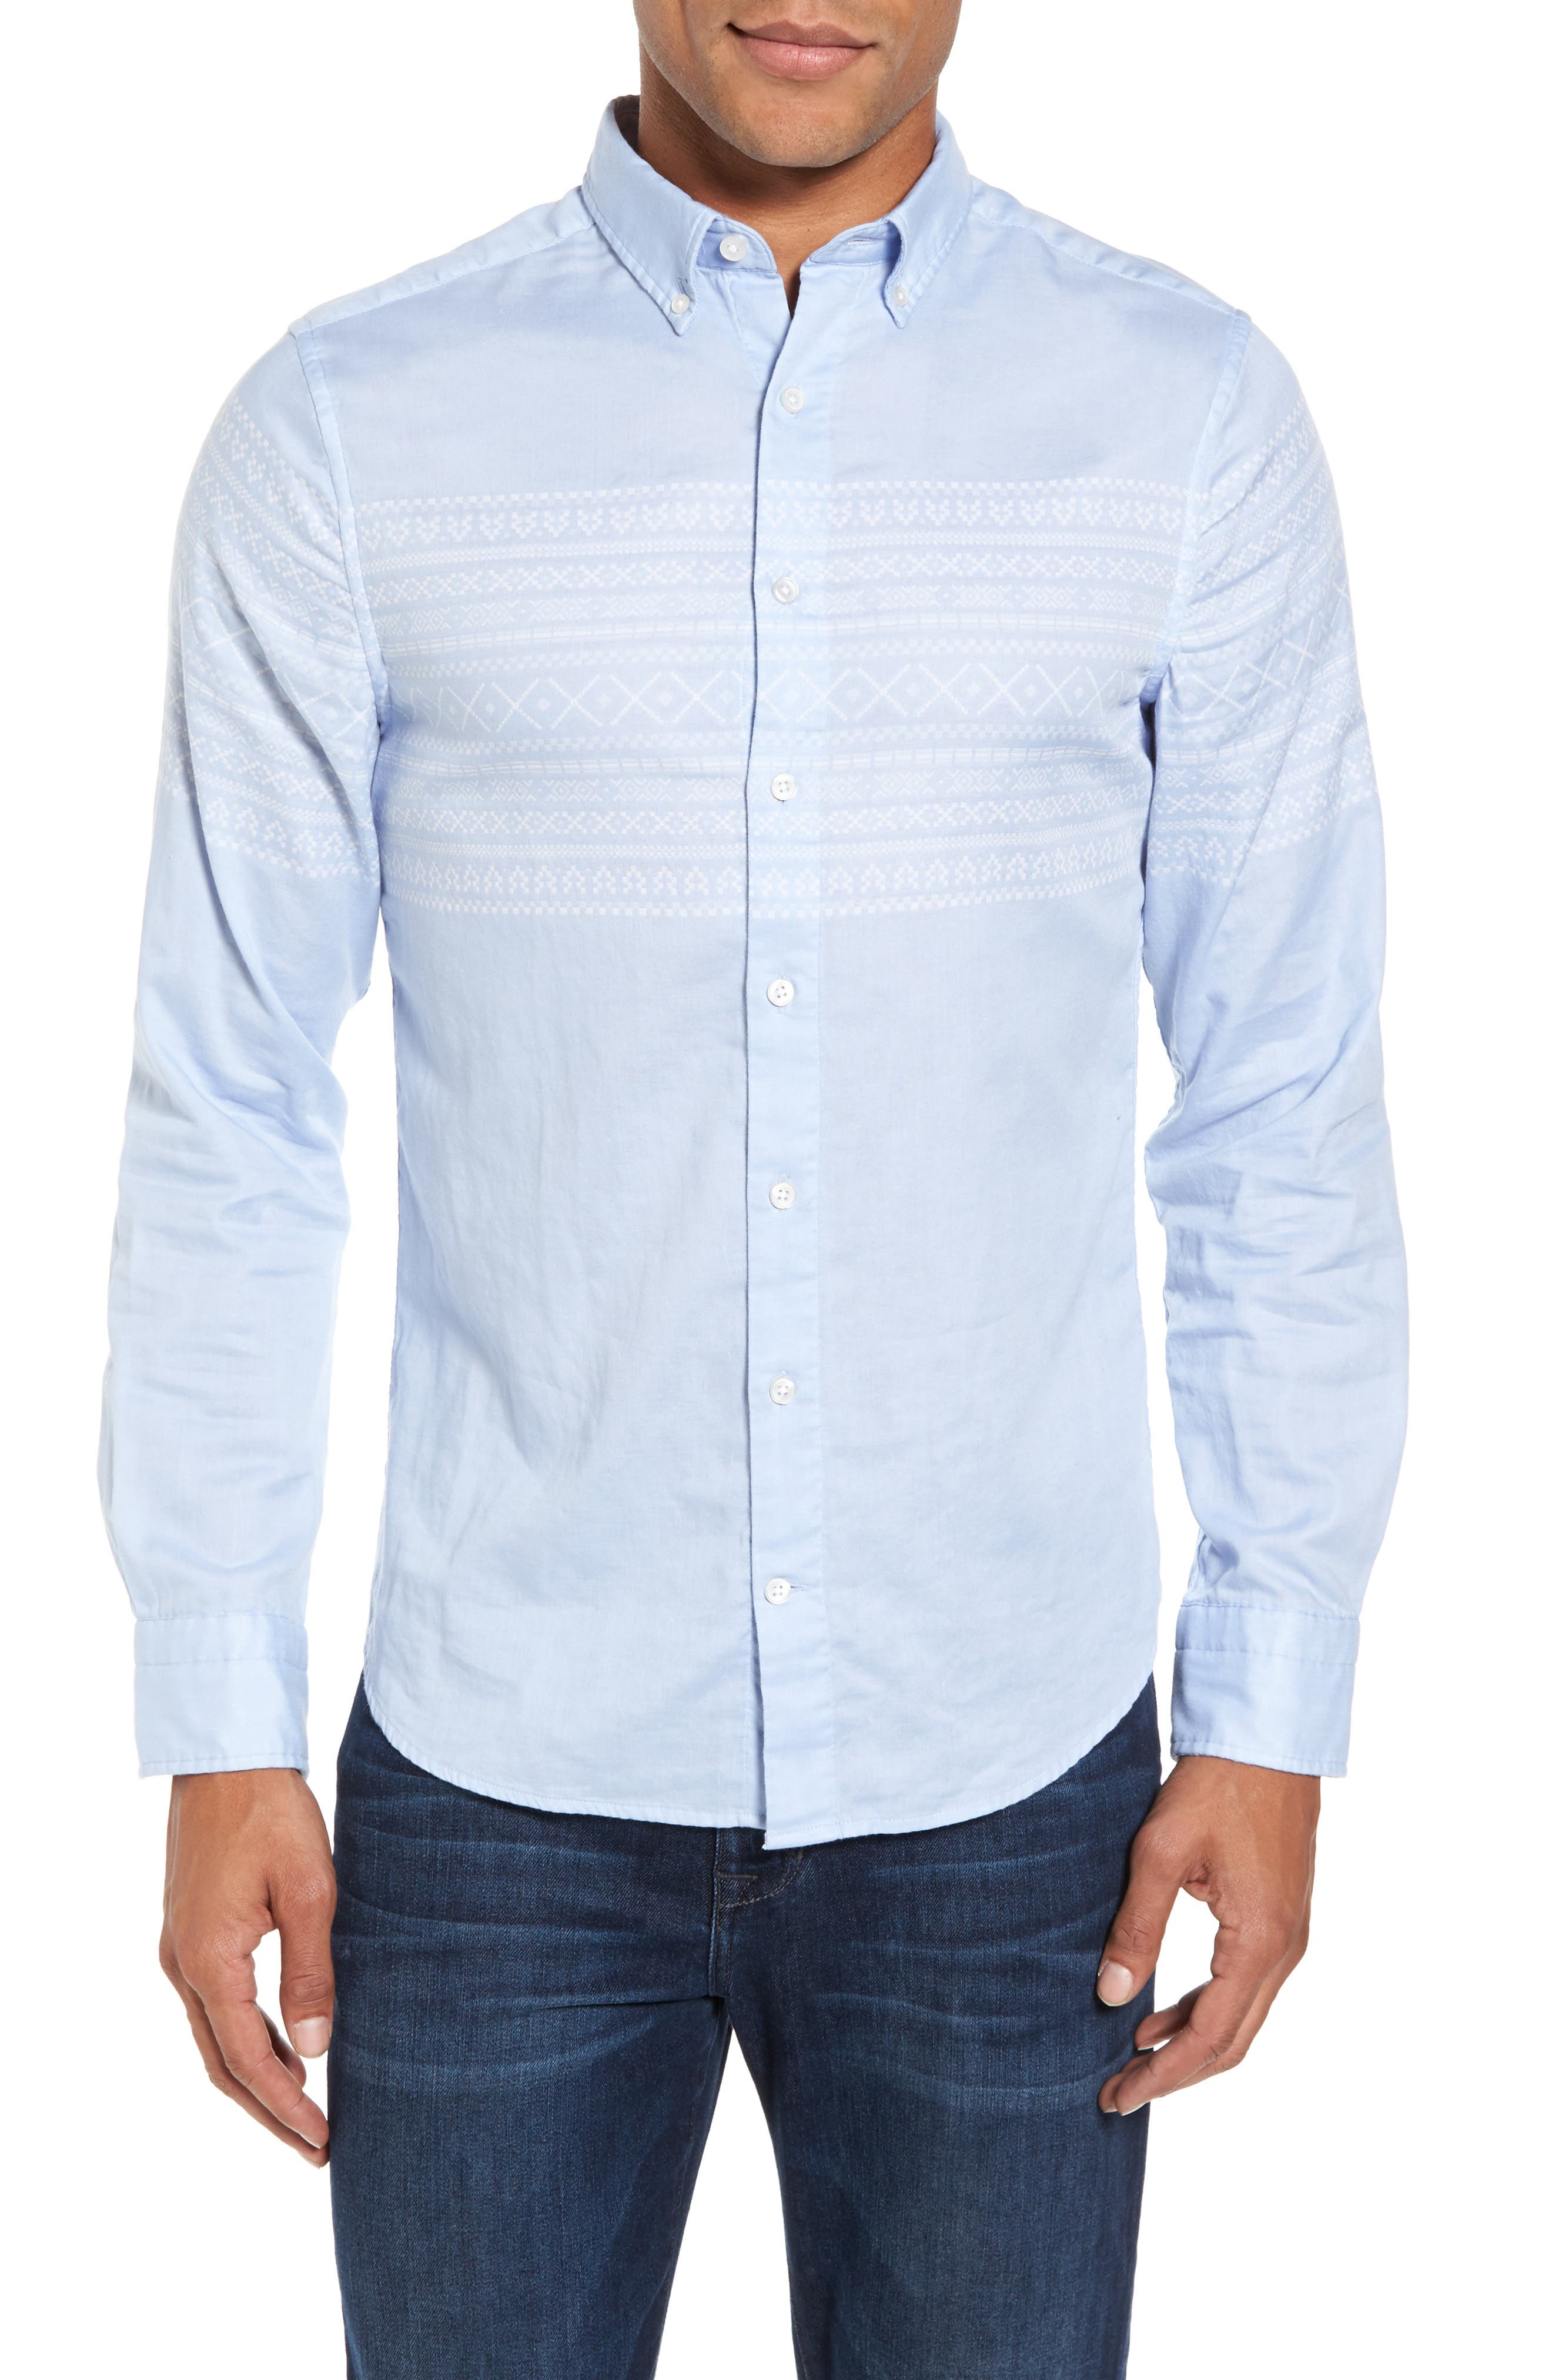 Gant 02 Extra Slim Fit Fair Isle Print Sport Shirt